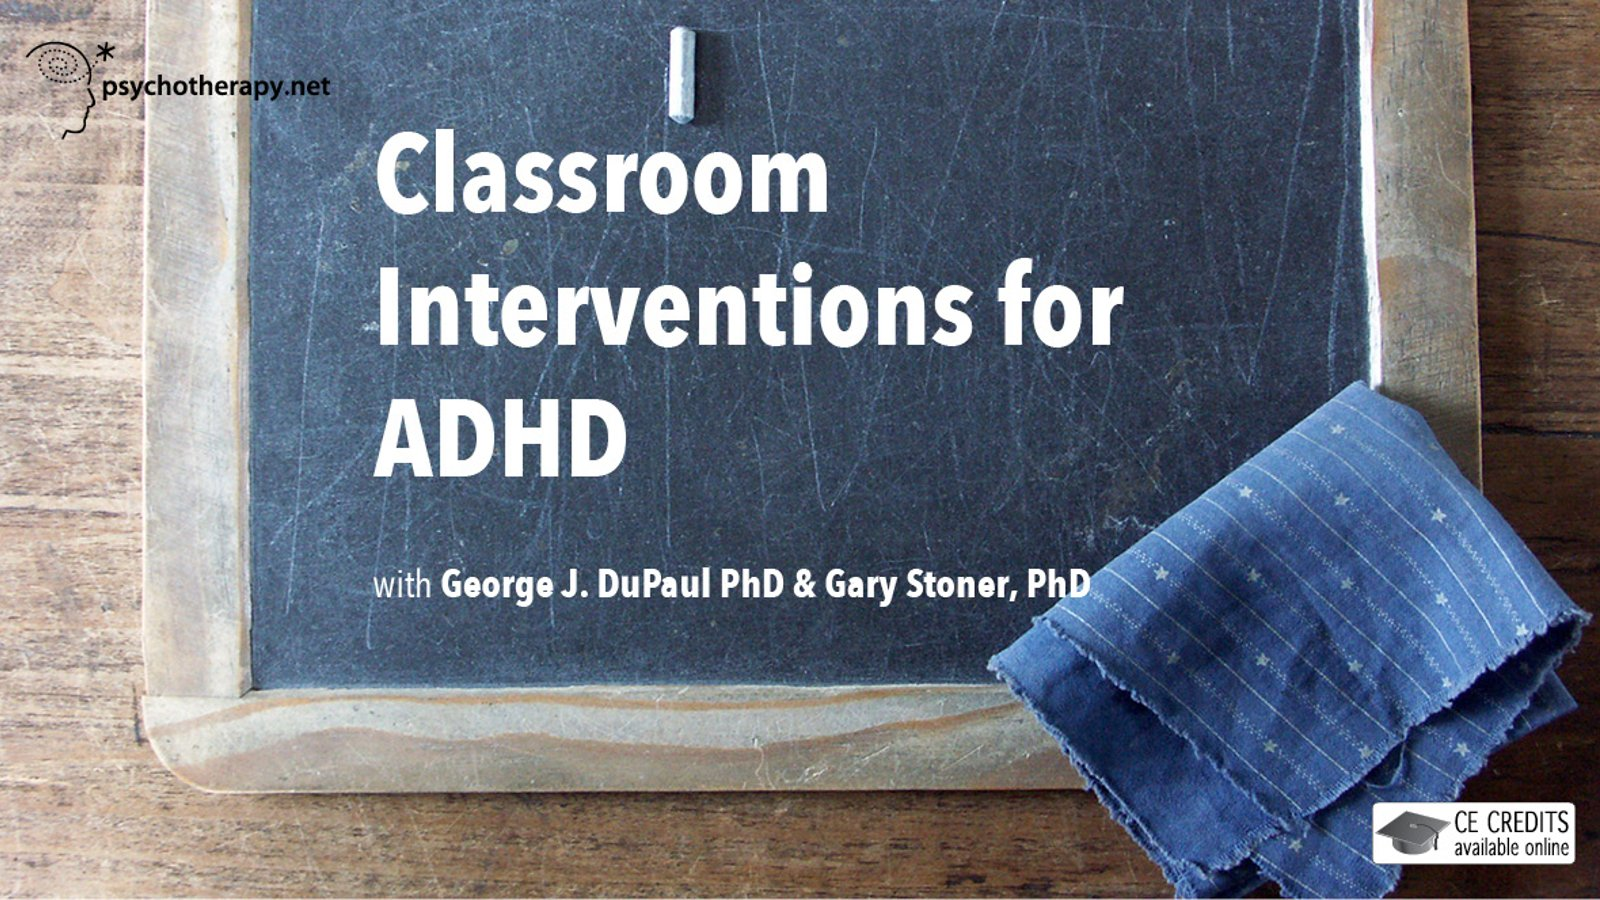 Classroom Interventions for ADHD - With George J. DuPaul & Gary Stoner